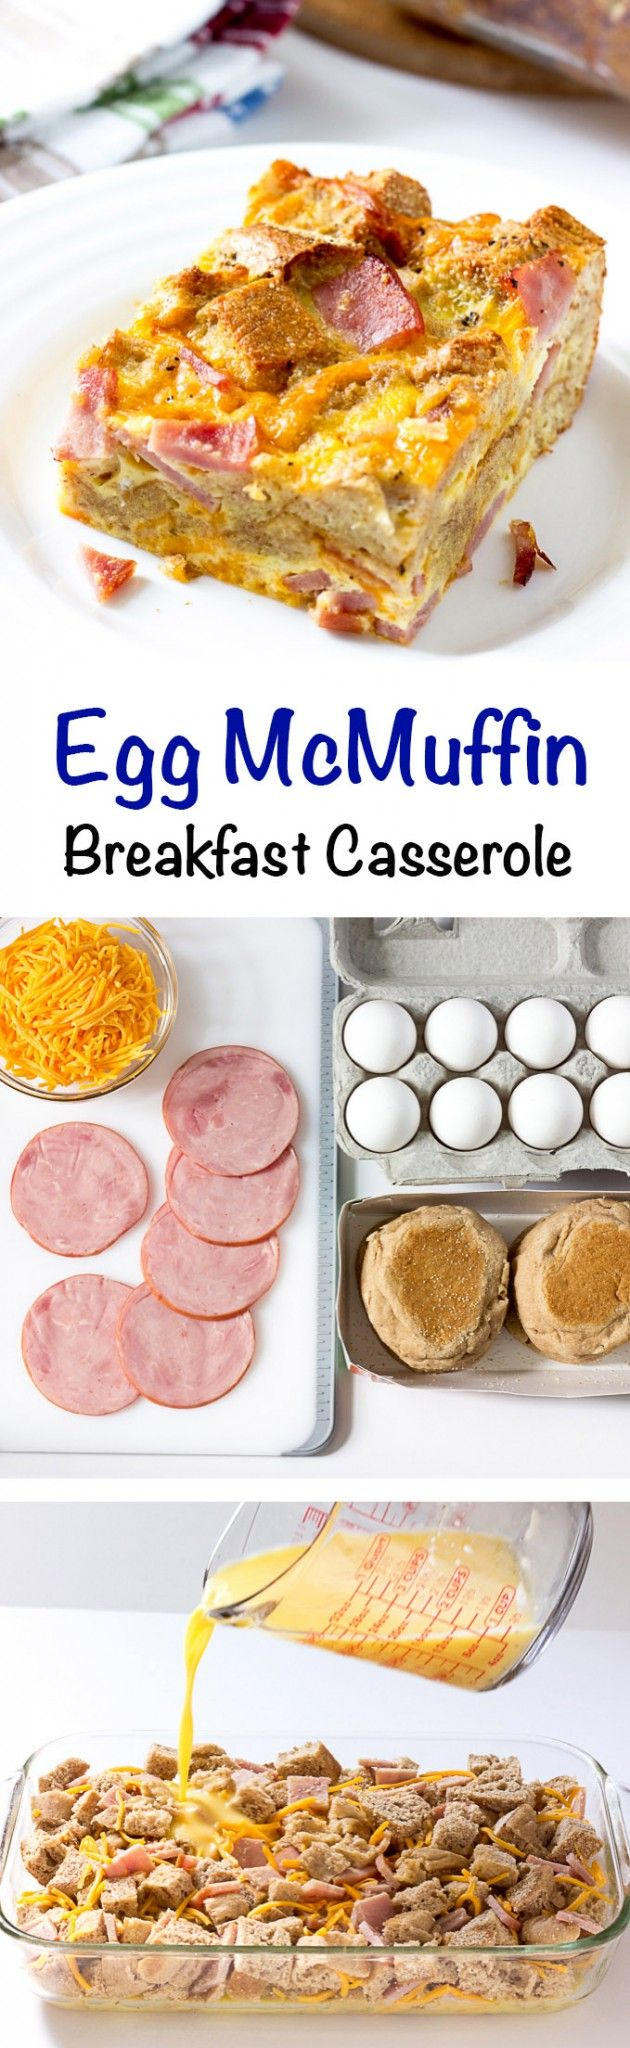 Egg McMuffin Breakfast Casserole - An easy breakfast casserole based on the McDonalds sandwich.  Great for feeding a crowd for the holidays.  Could also make ahead!